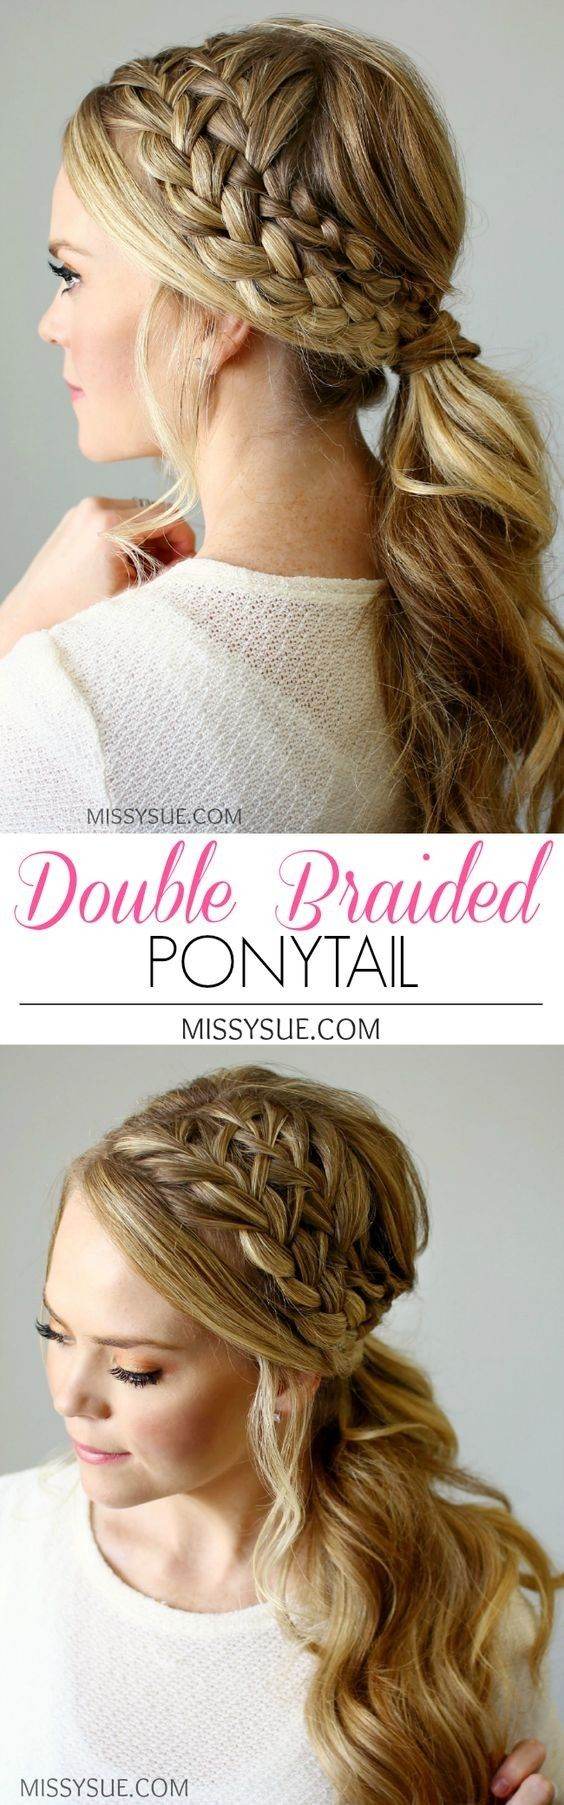 Incredible 1000 Ideas About Thick Hair Hairstyles On Pinterest Curling Short Hairstyles For Black Women Fulllsitofus